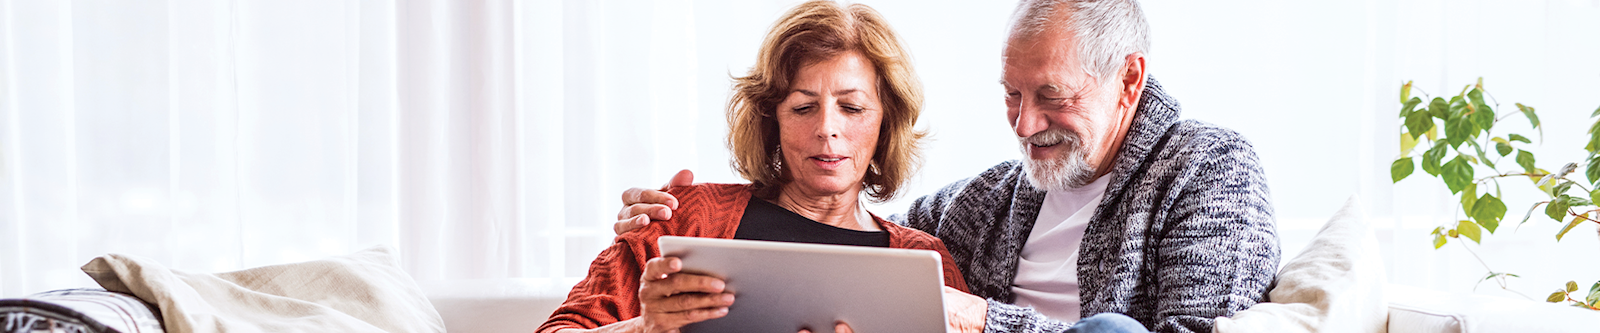 Mature husband and wife looking at IRA account on laptop at home